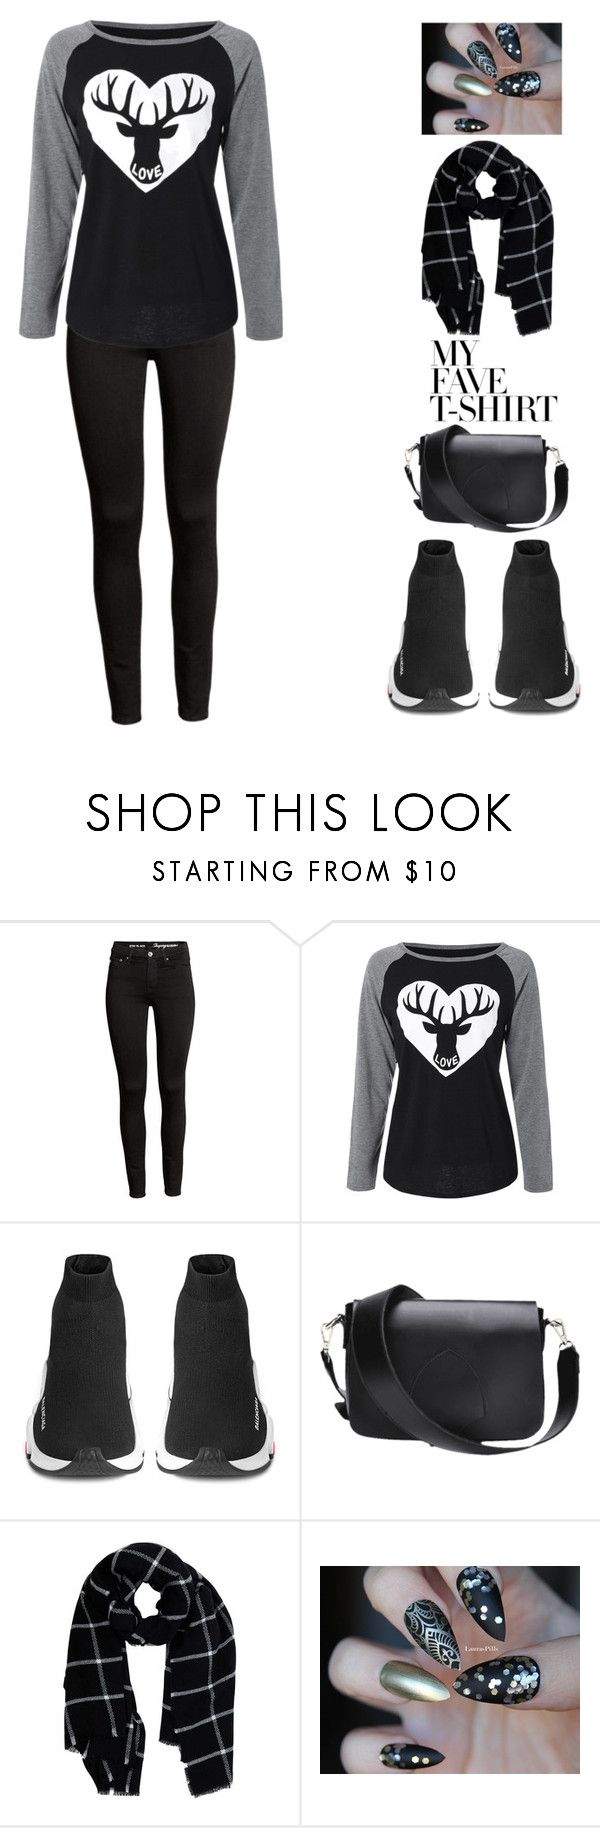 """""""Dress Up a T-Shirt"""" by beautygoals ❤ liked on Polyvore featuring Balenciaga, Warehouse and MyFaveTshirt"""